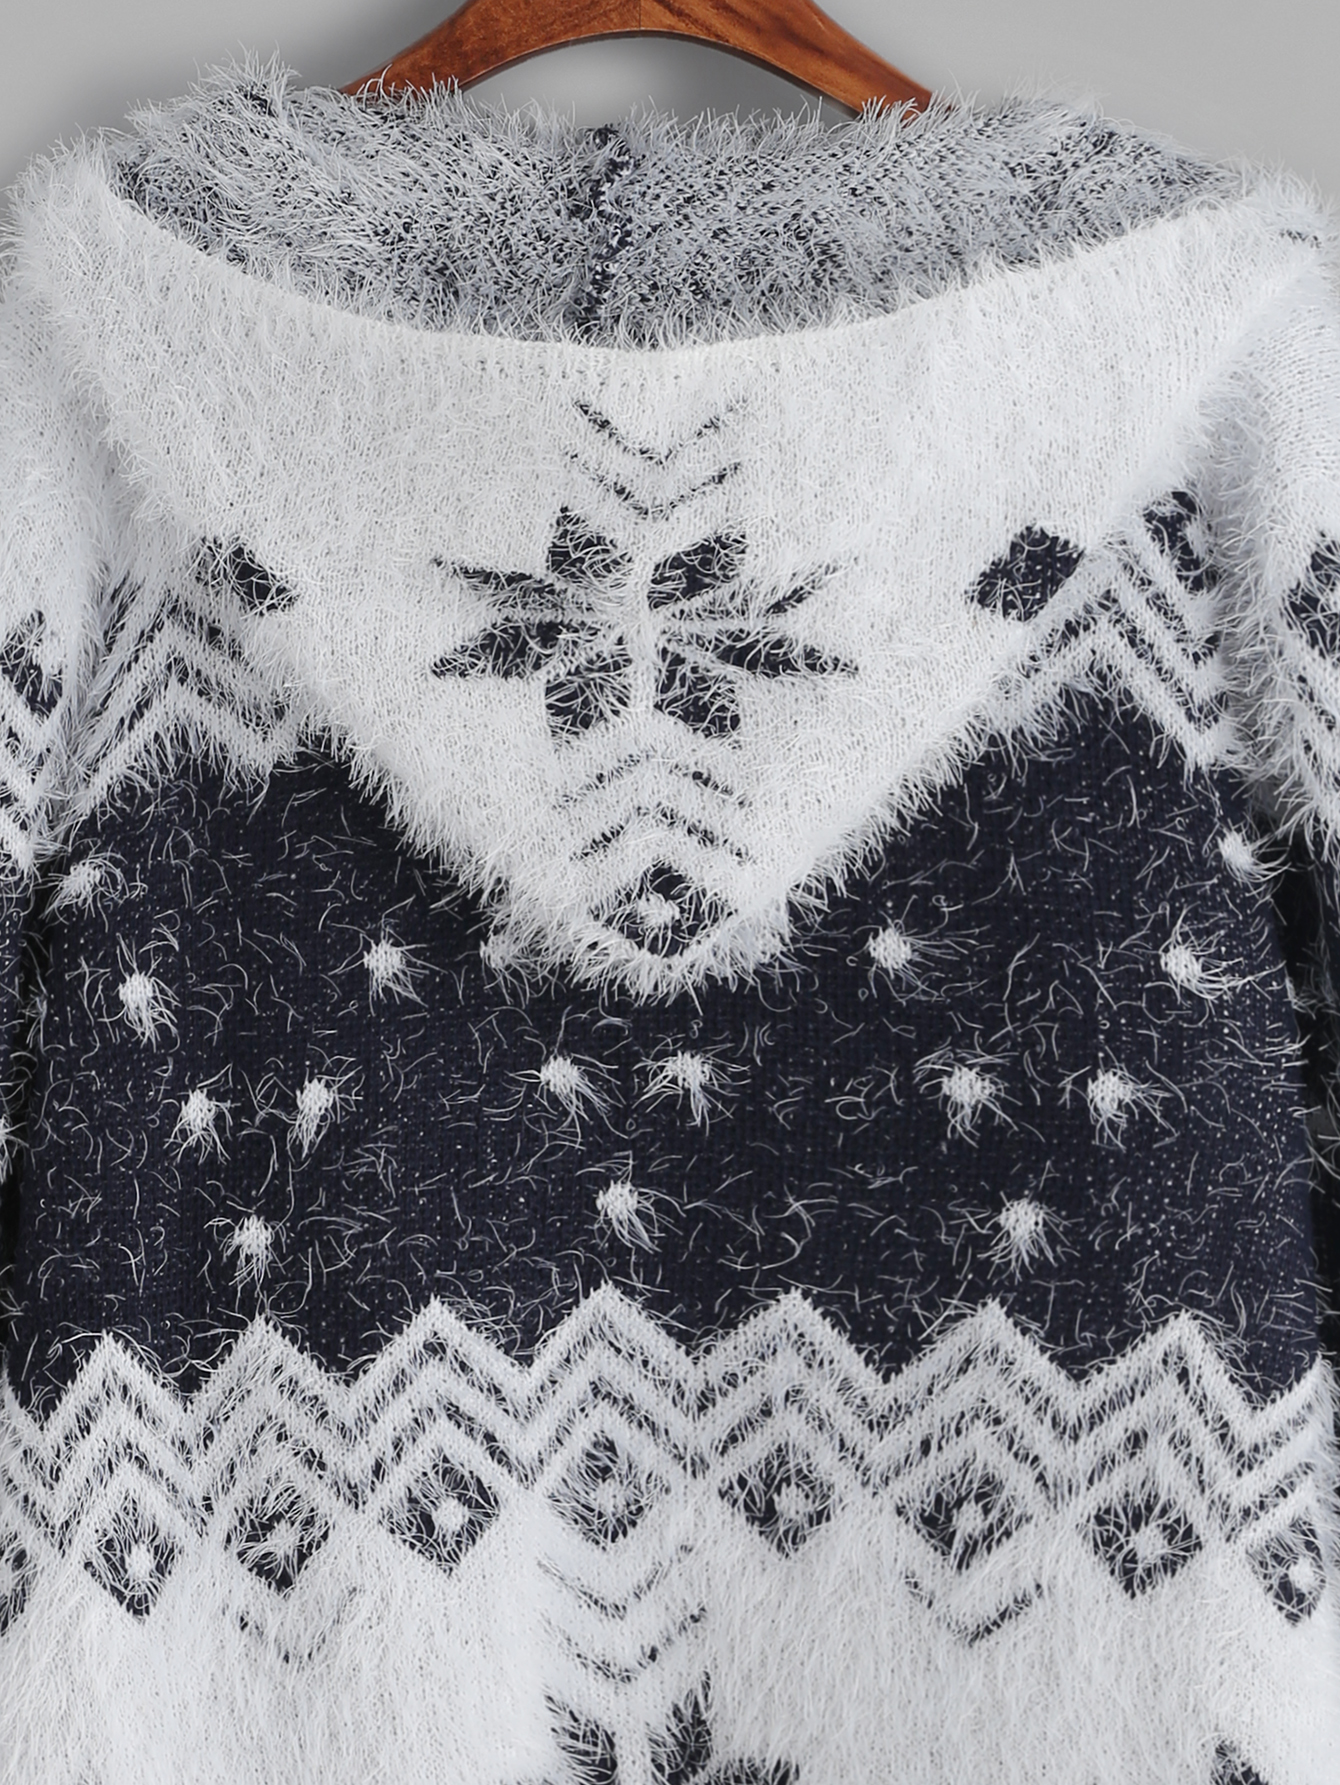 ef778d1a8177 ... Color Block Snowflake Pattern Fuzzy Hooded Sweater Coat Cardigan -  Thumbnail 2 ...